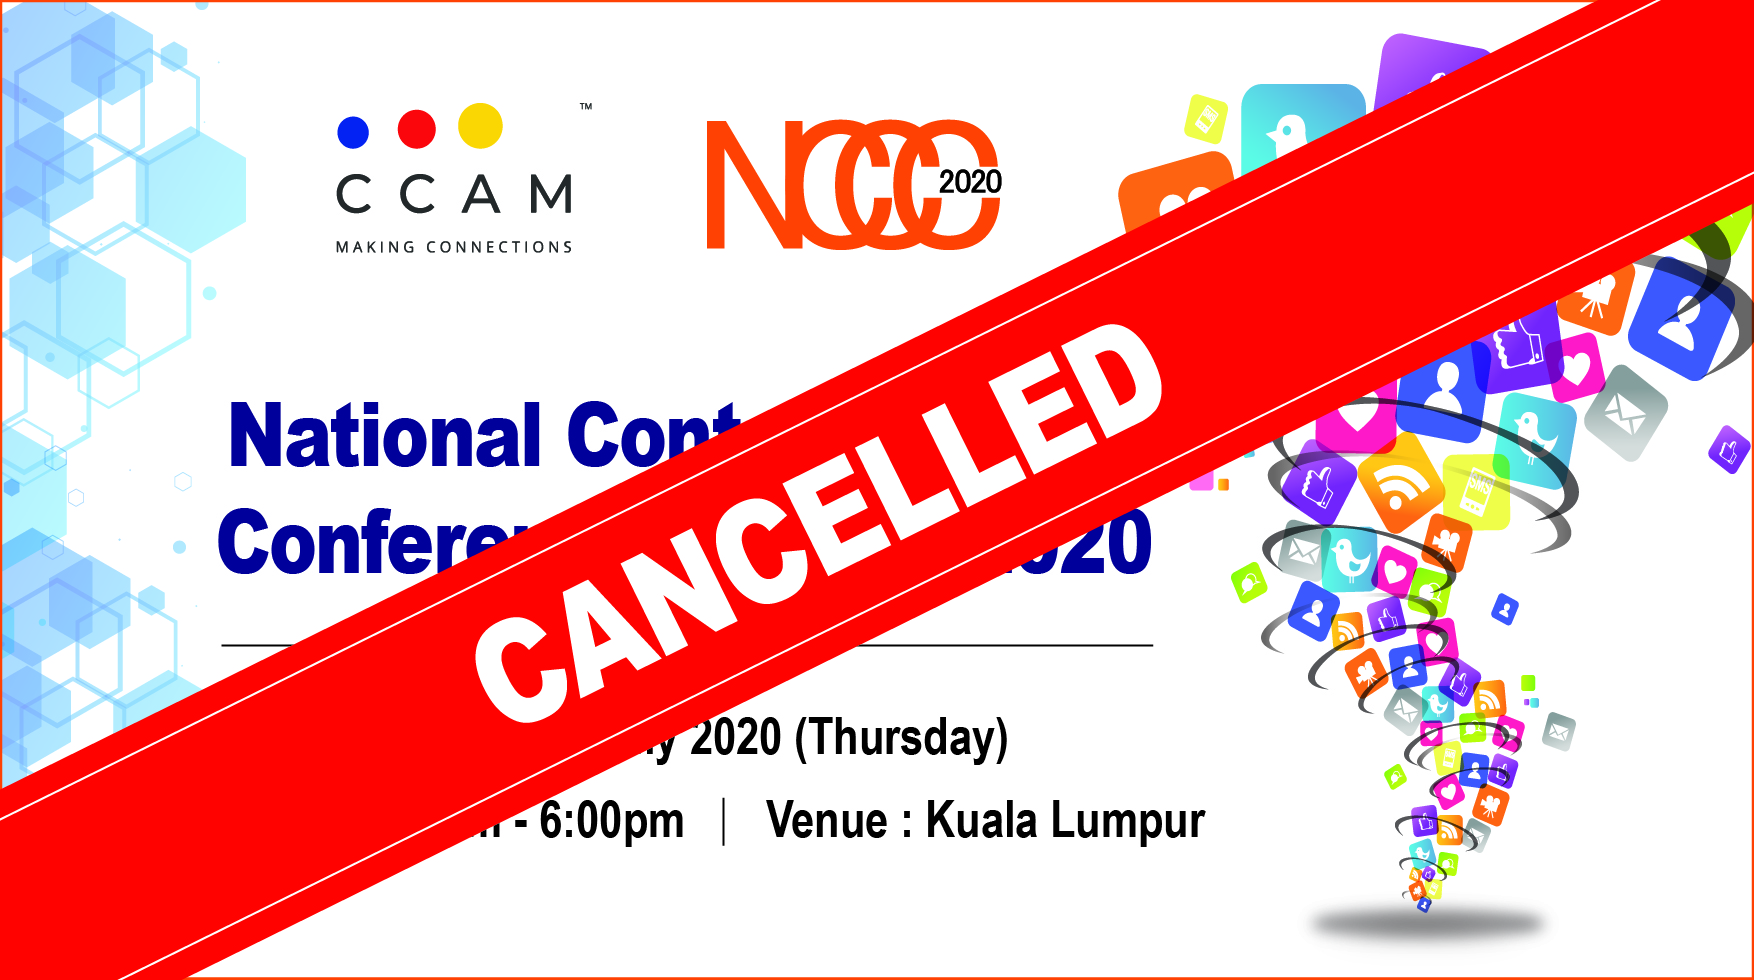 National Contact Centre Conference (NCCC) 2020